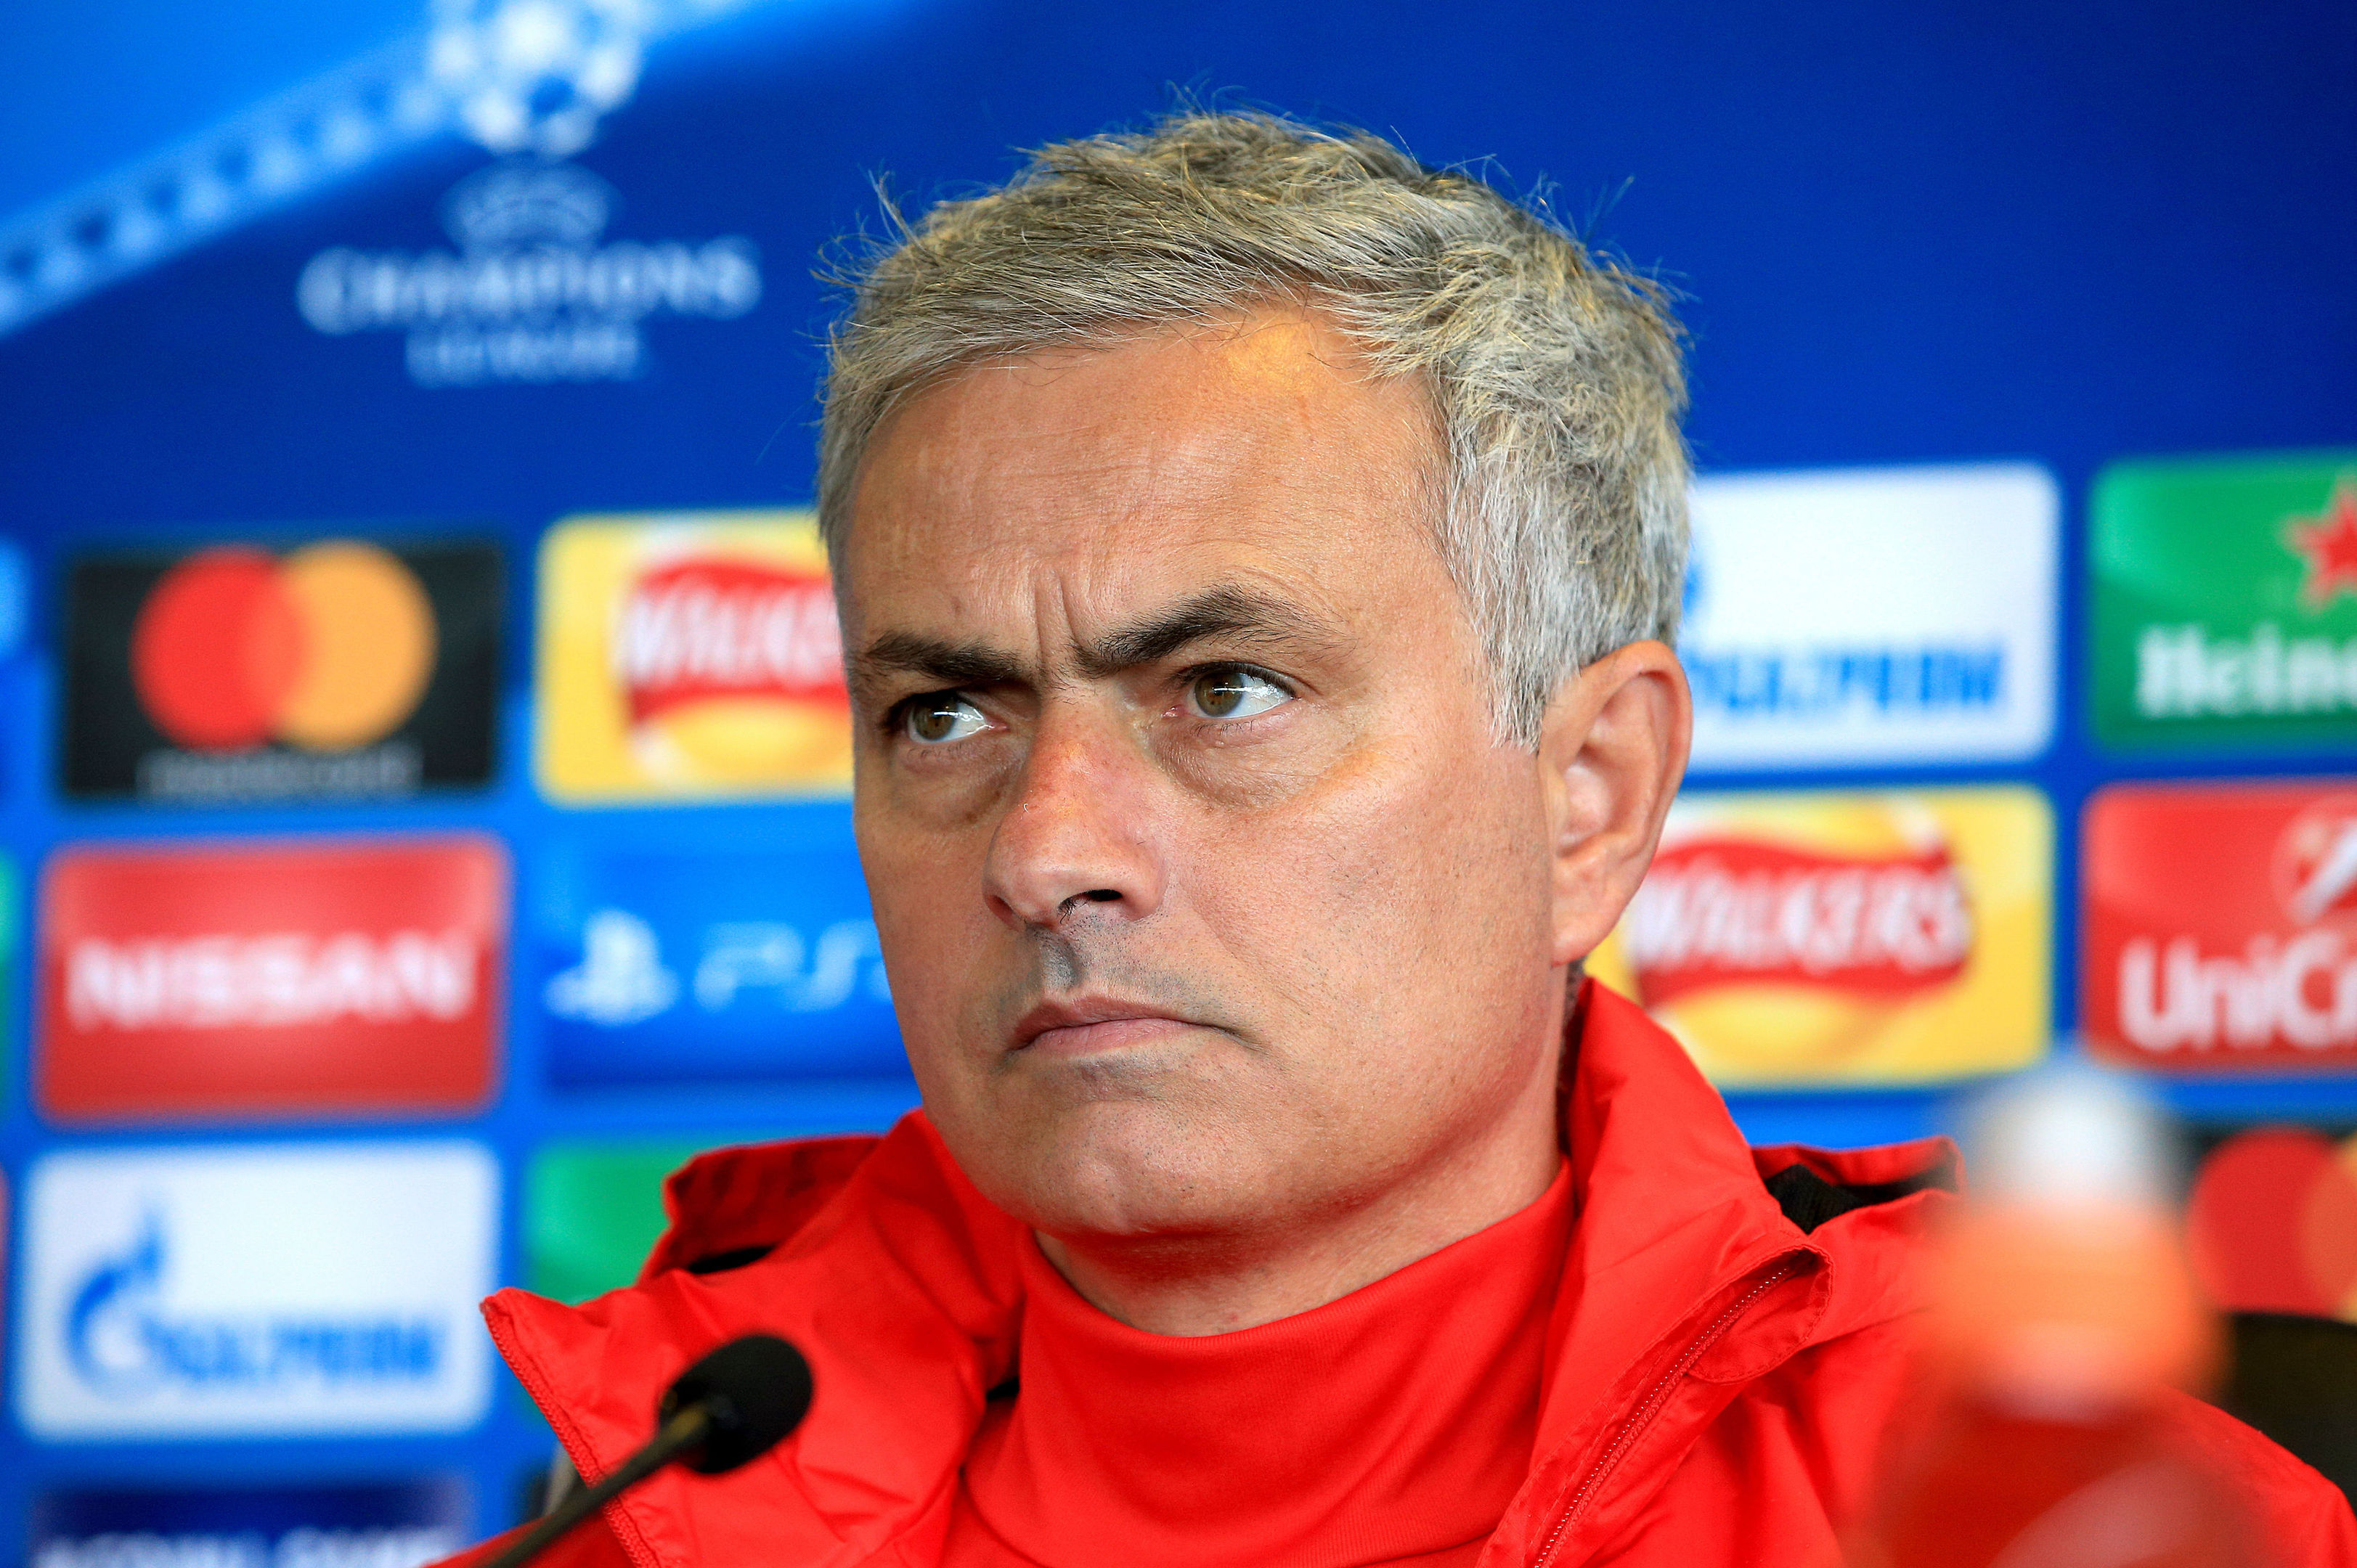 Manchester United manager Jose Mourinho. (Peter Byrne/PA Wire)